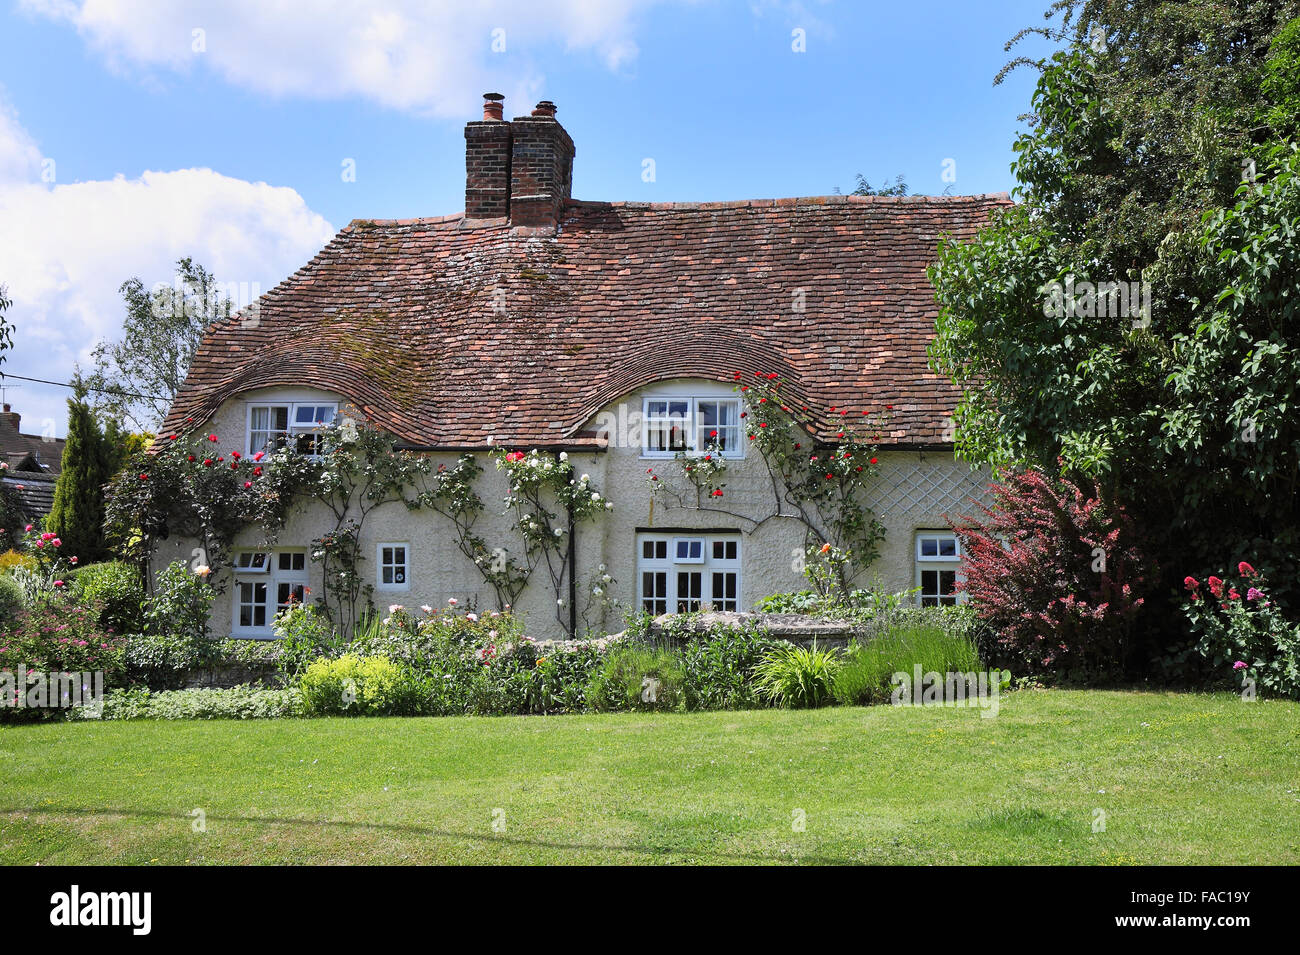 Quaint traditional English Village Cottage and garden with ... Quaint English Cottages